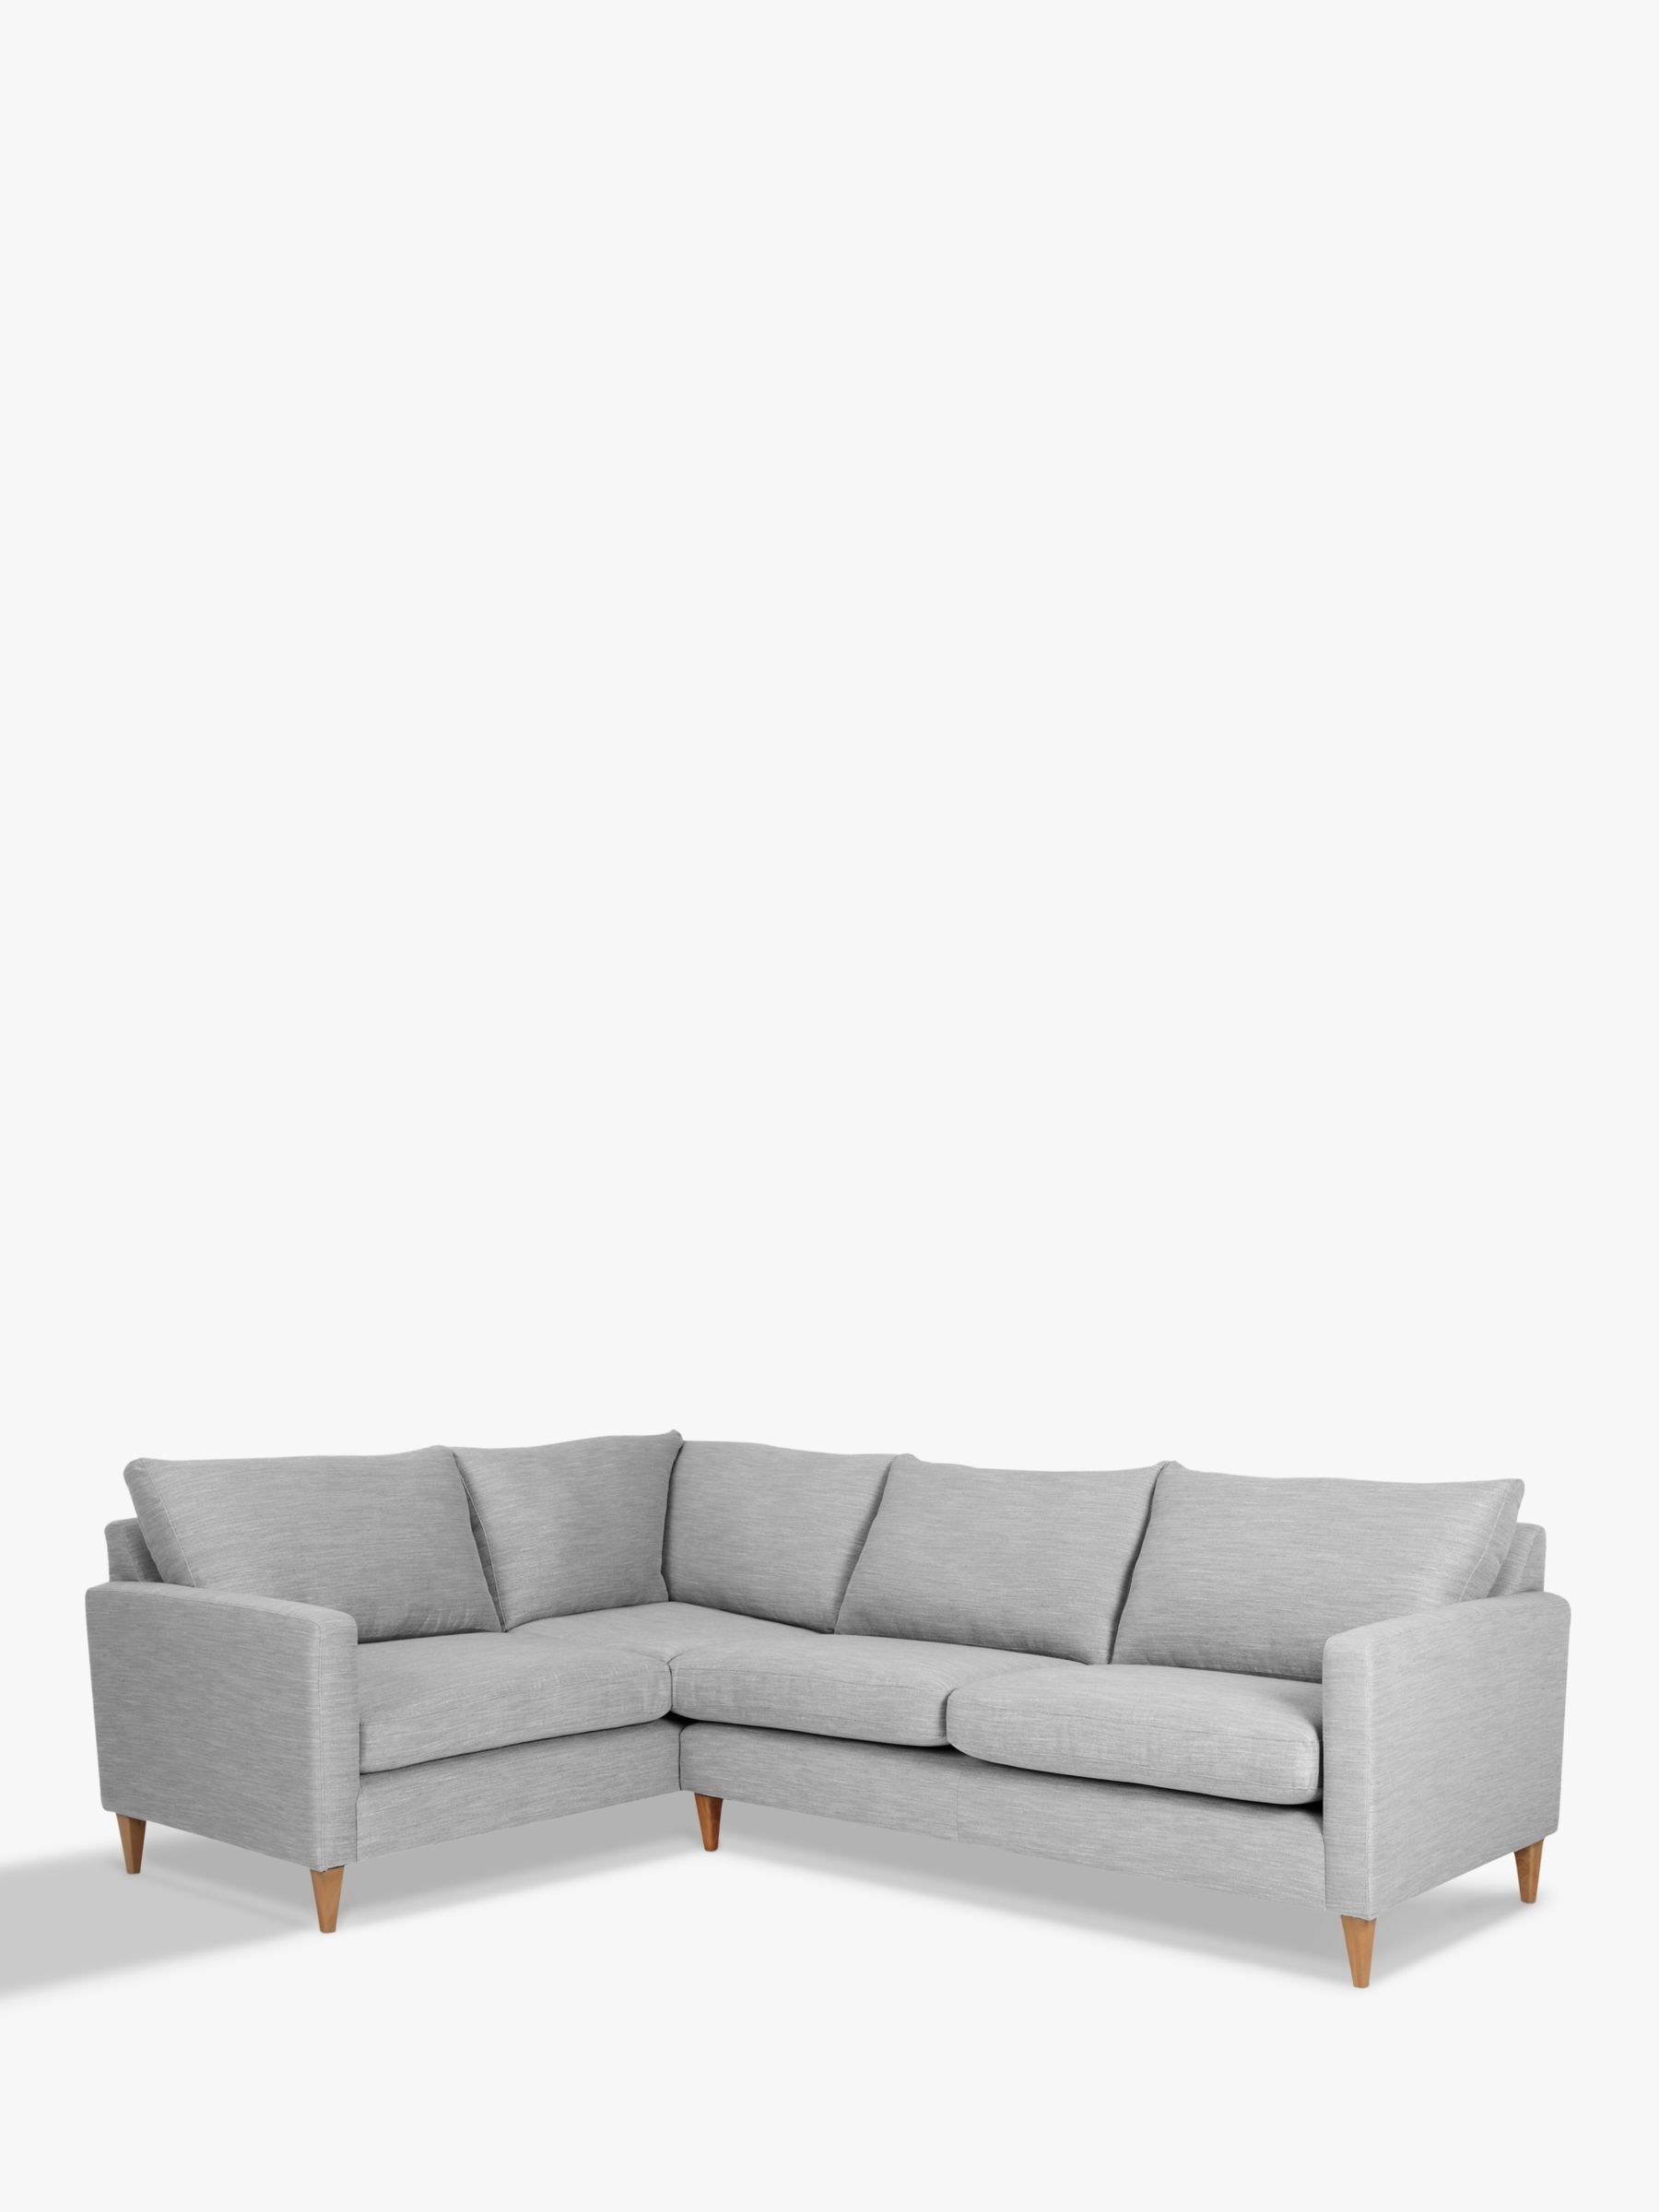 John Lewis Partners Bailey Fixed Cover Lhf Corner End Sofa Small Sitting Rooms Sofa Couch